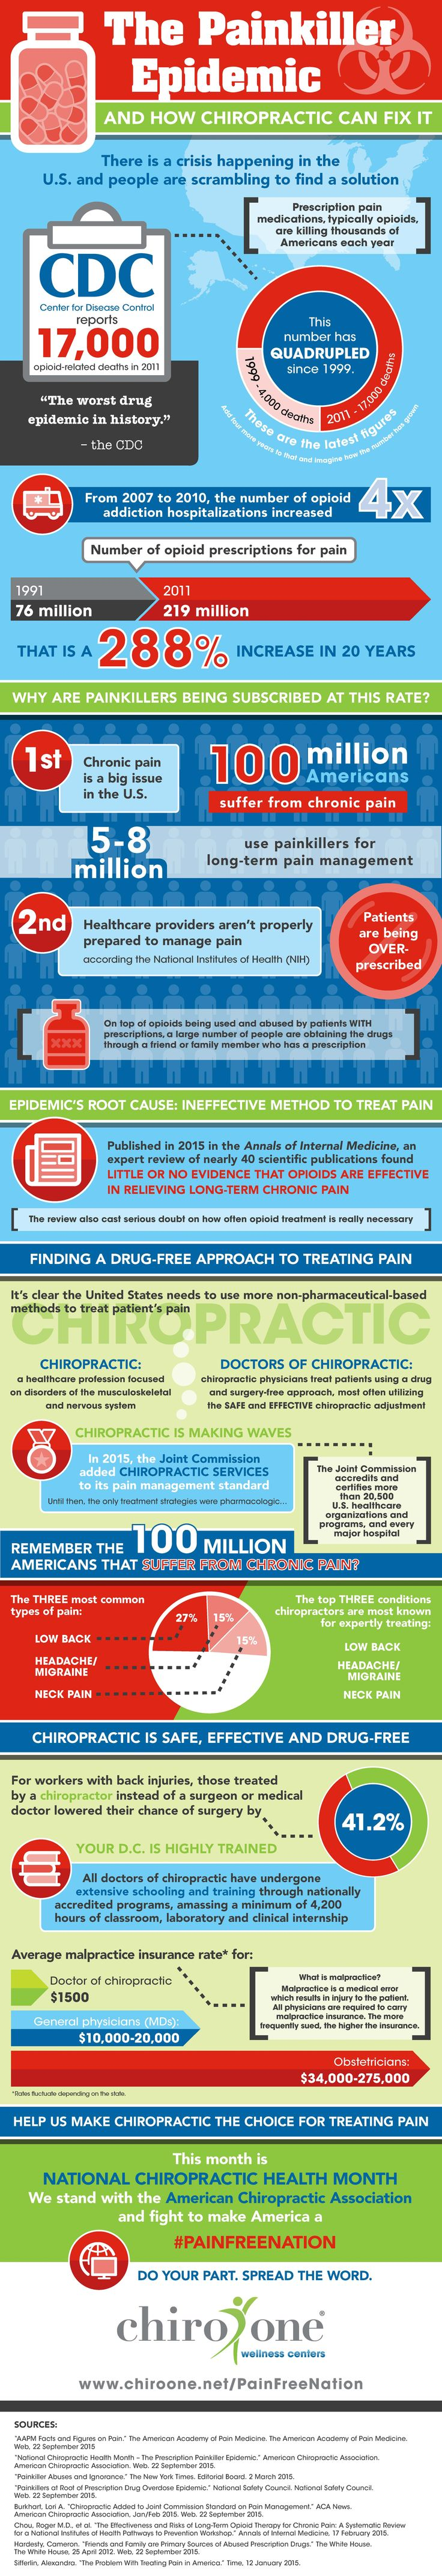 [INFOGRAPHIC] The prescription painkiller epidemic -- and an overlooked solution. #painfreenation #chronicpain #prescriptionpainkillers  Chiro One Chiropractic Wellness Centers